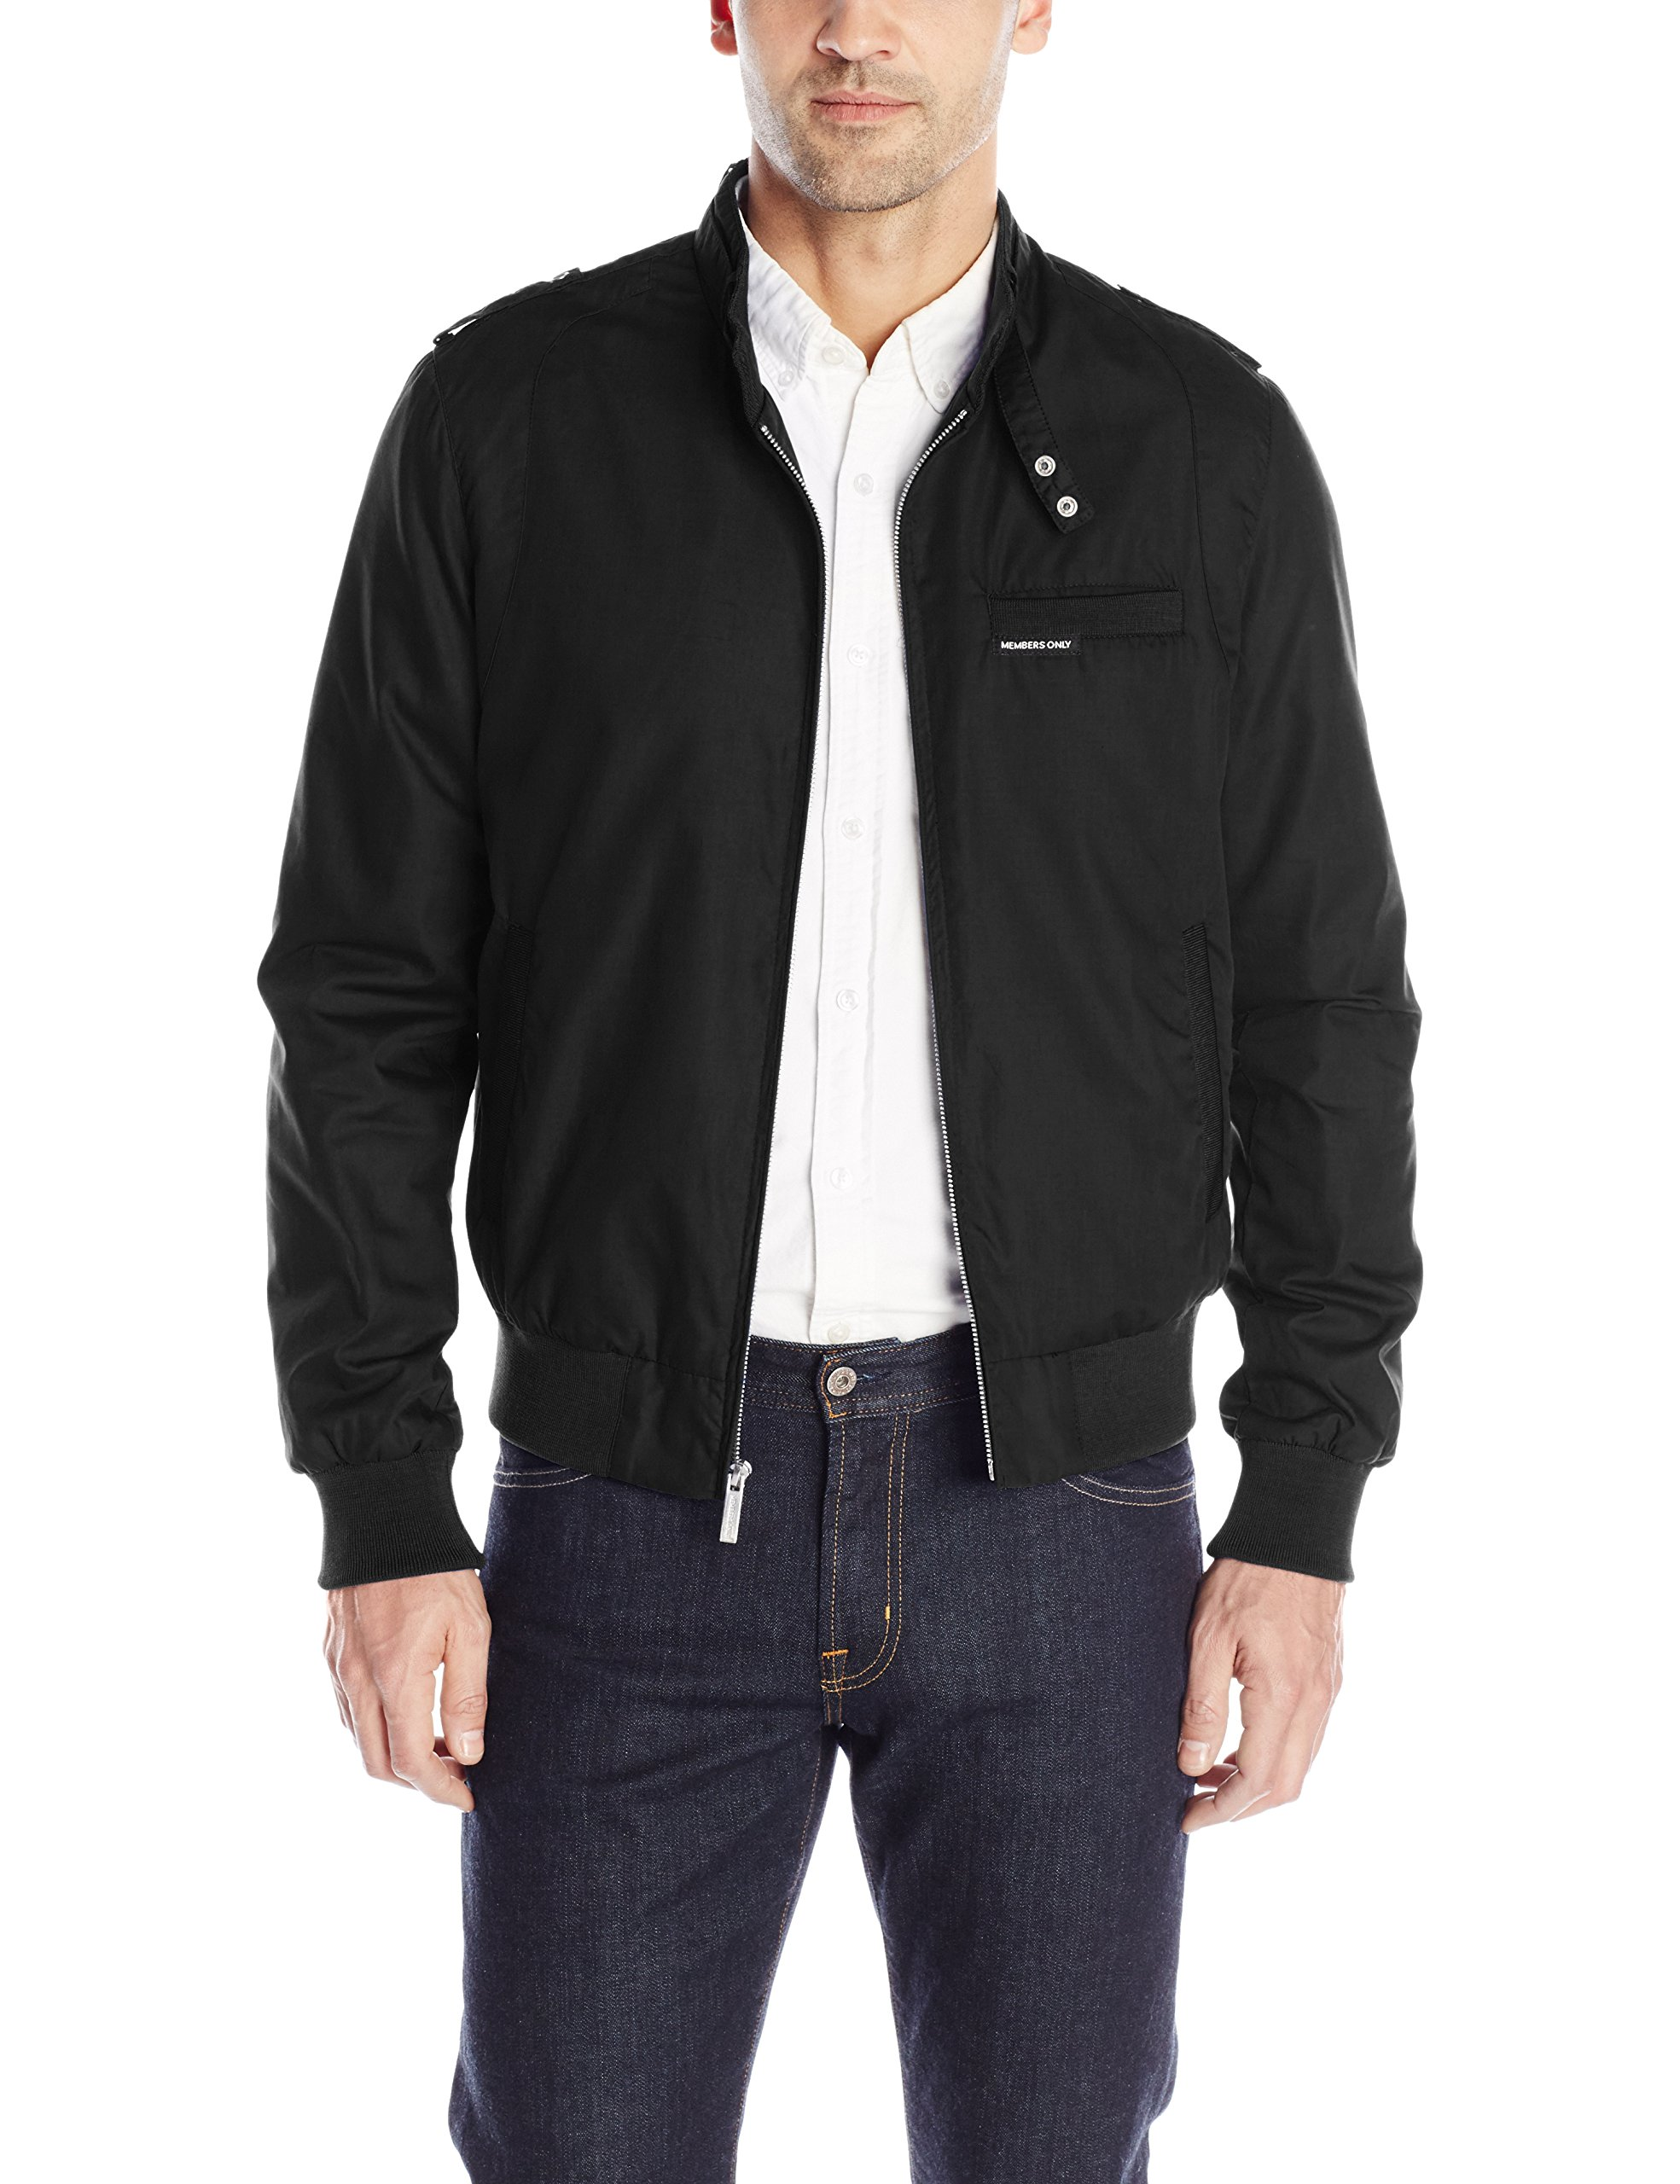 Members Only Men's Original Iconic Racer Jacket, Black, XX-Large by Members Only